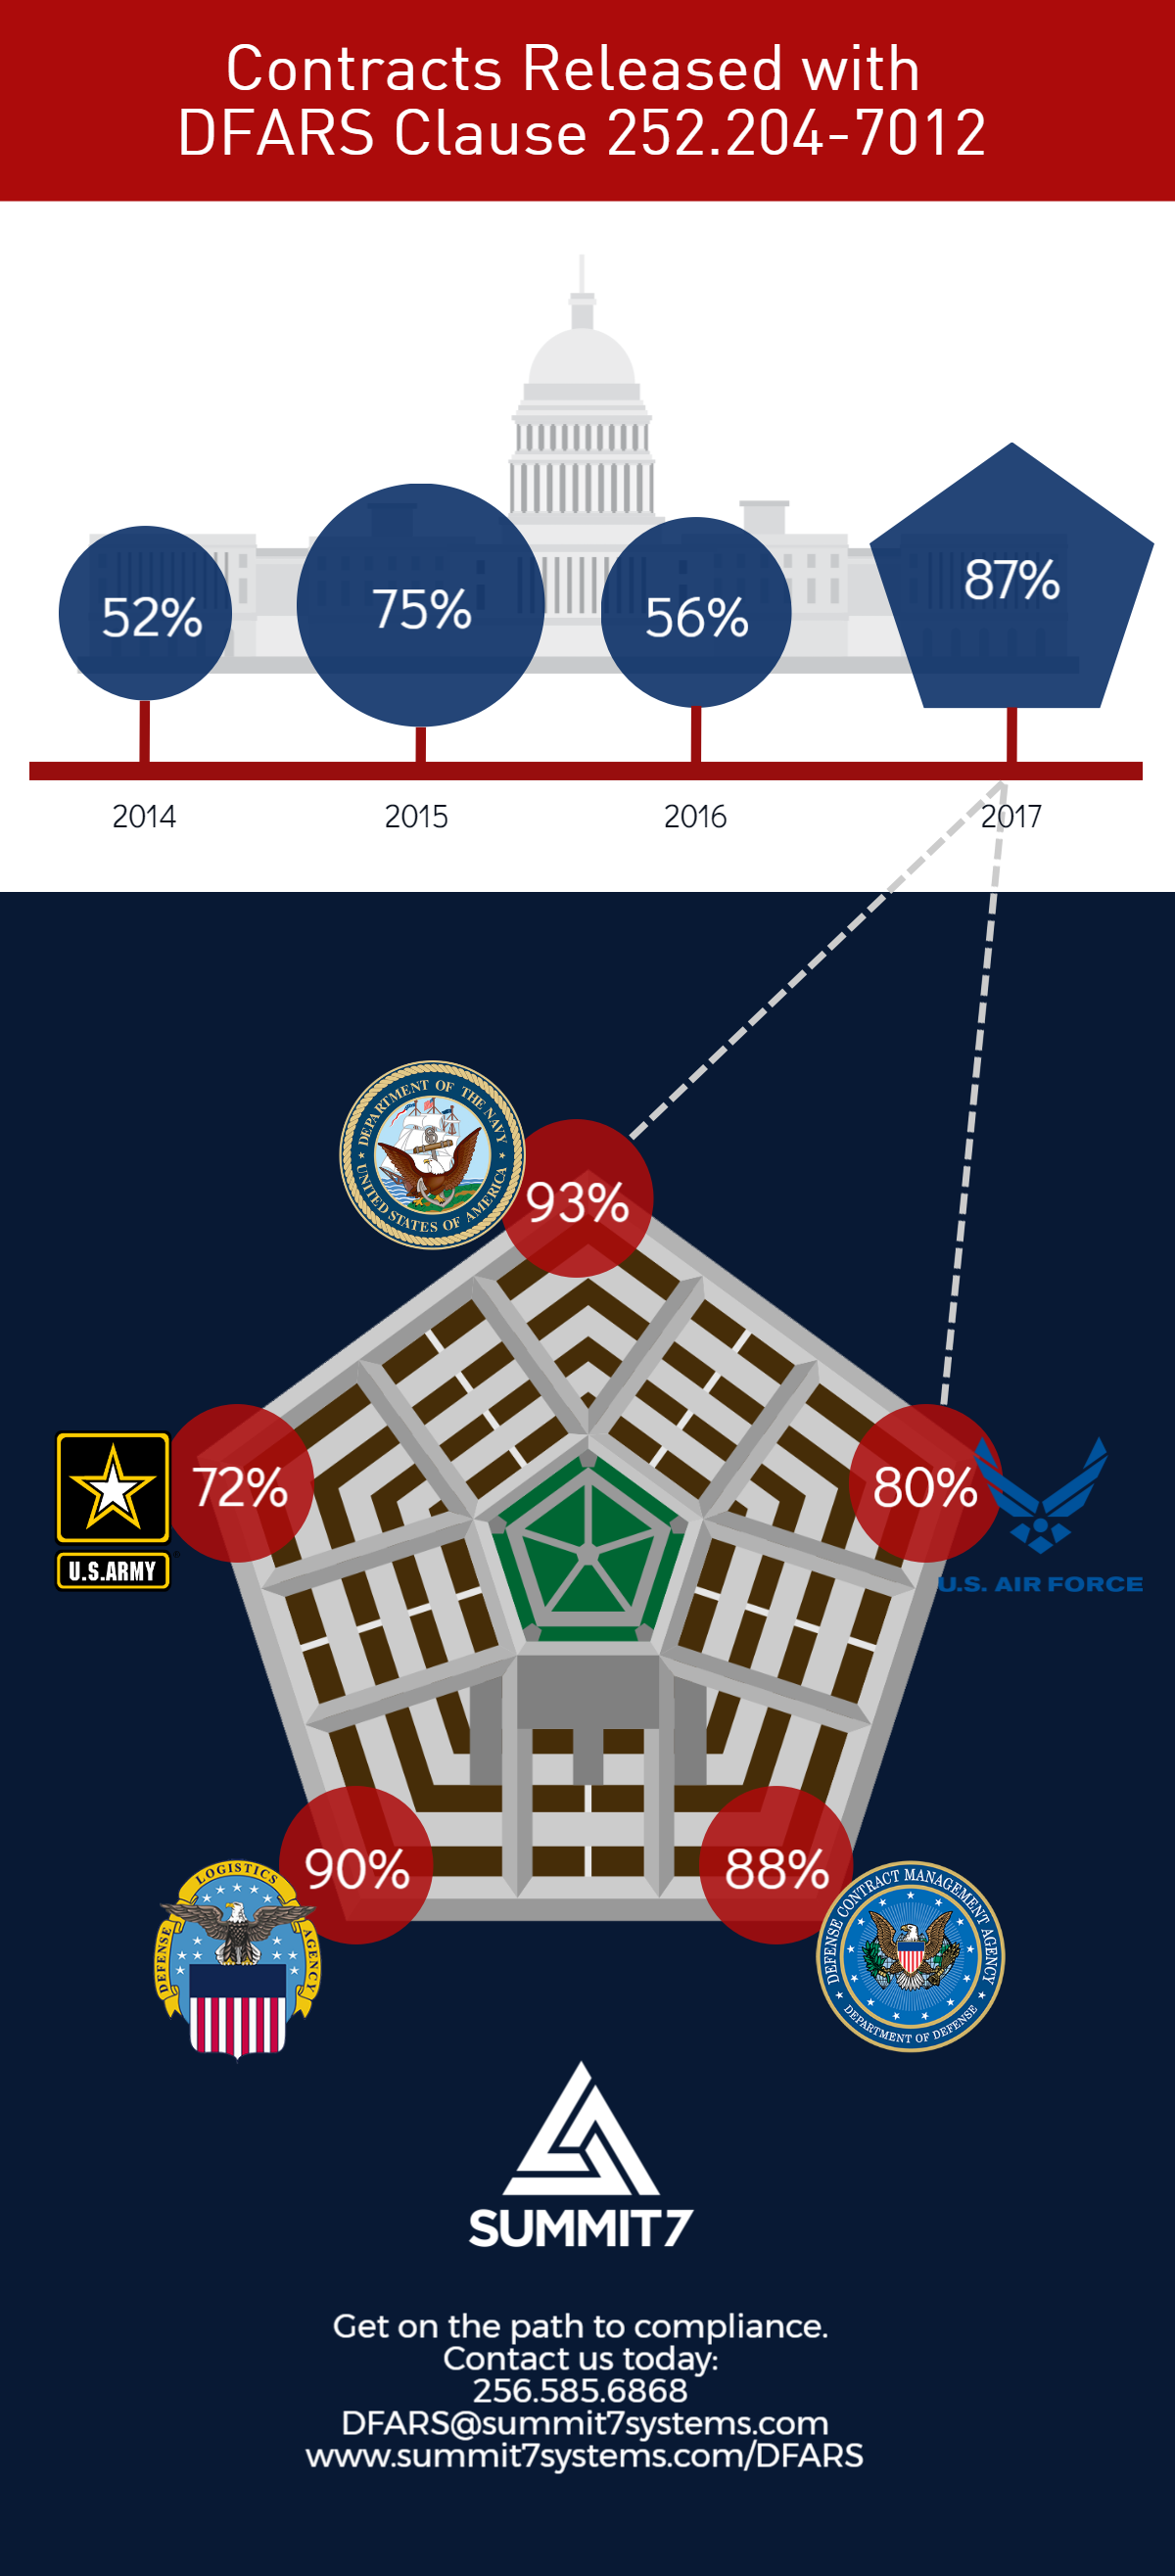 DFARS_Infographic_Summit7Systems.png